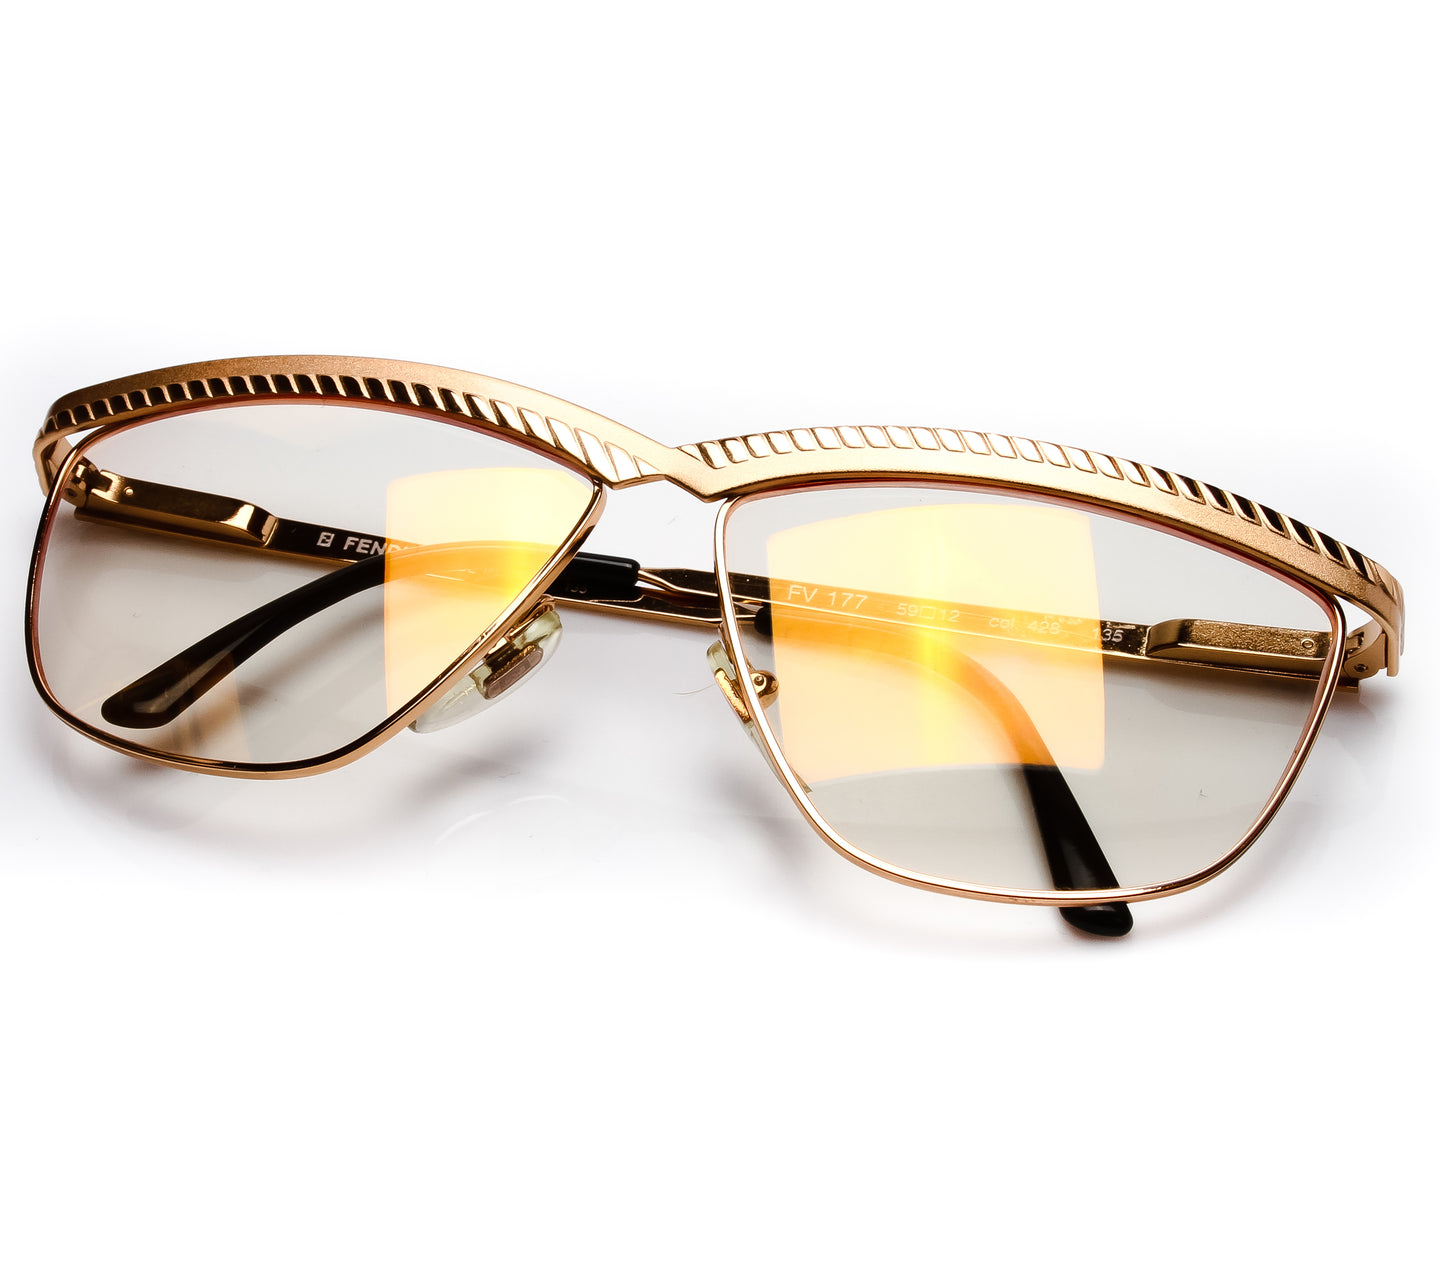 Fendi FV177 Thumbnail, Fendi , glasses frames, eyeglasses online, eyeglass frames, mens glasses, womens glasses, buy glasses online, designer eyeglasses, vintage sunglasses, retro sunglasses, vintage glasses, sunglass, eyeglass, glasses, lens, vintage frames company, vf